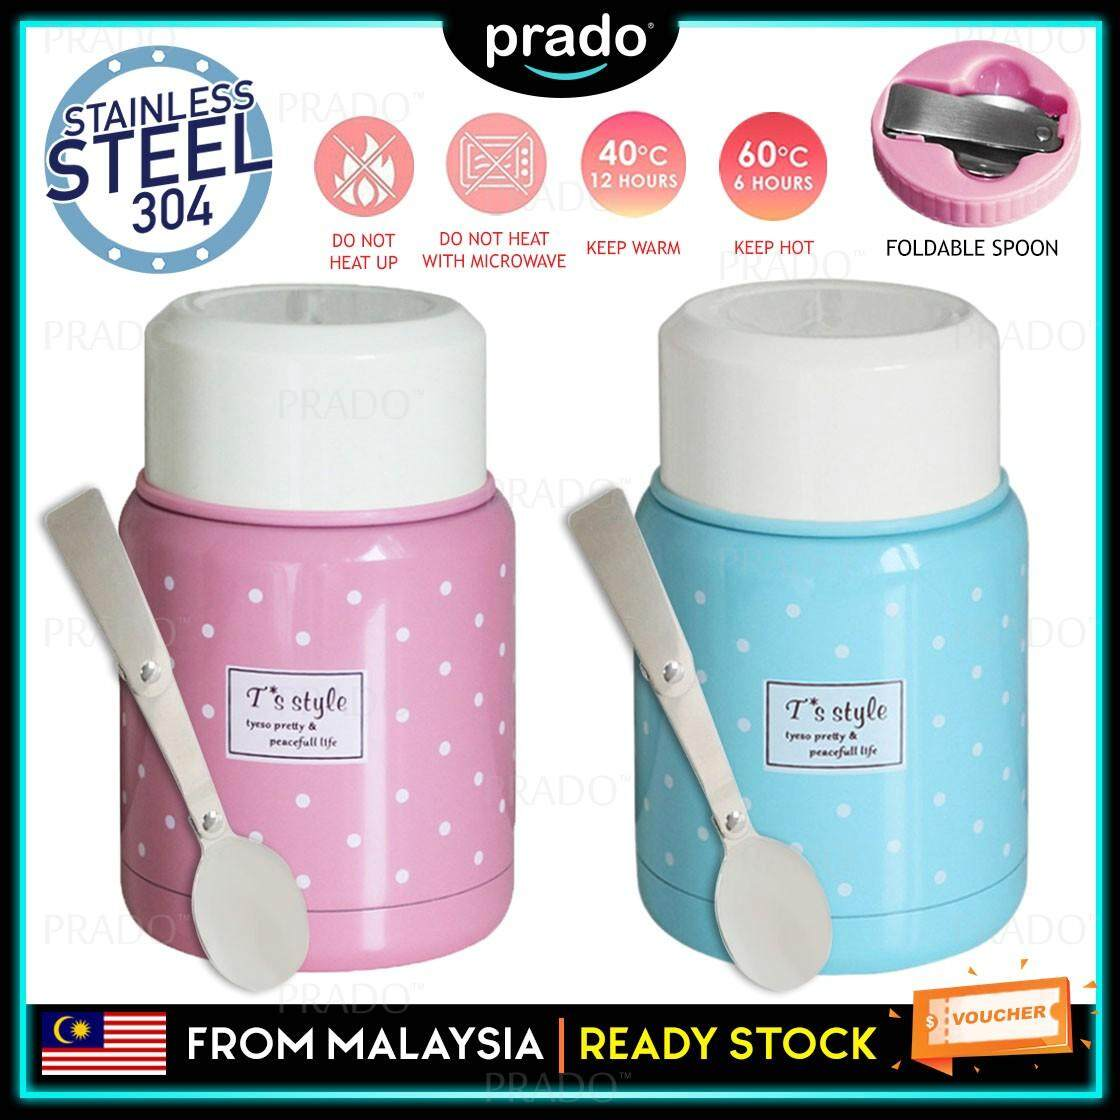 PRADO Malaysia 350mL Thermos Flask Vacuum Cup Lunch box Fast food Instant noodle bowl Vacuum Insulated Pot With Handle Suitable For School, Office, Outdoor Picnic Travel